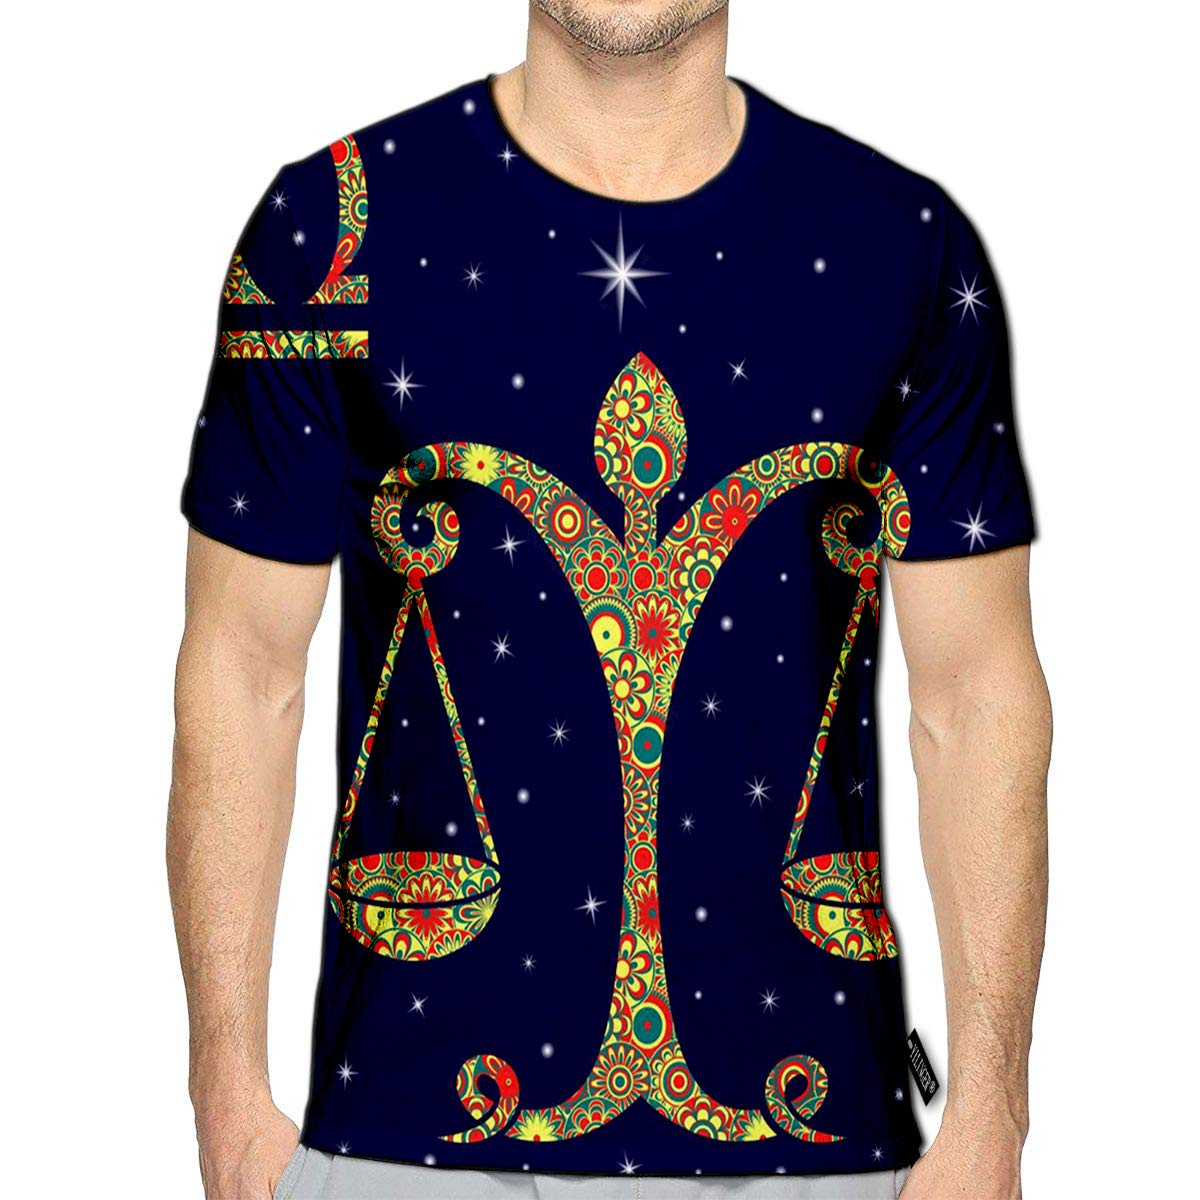 T-Shirt 3D Printed Zodiac Sign Libra with Colorful Flowers Fill in Warm Hues Blue Starry Sky Casual Tees